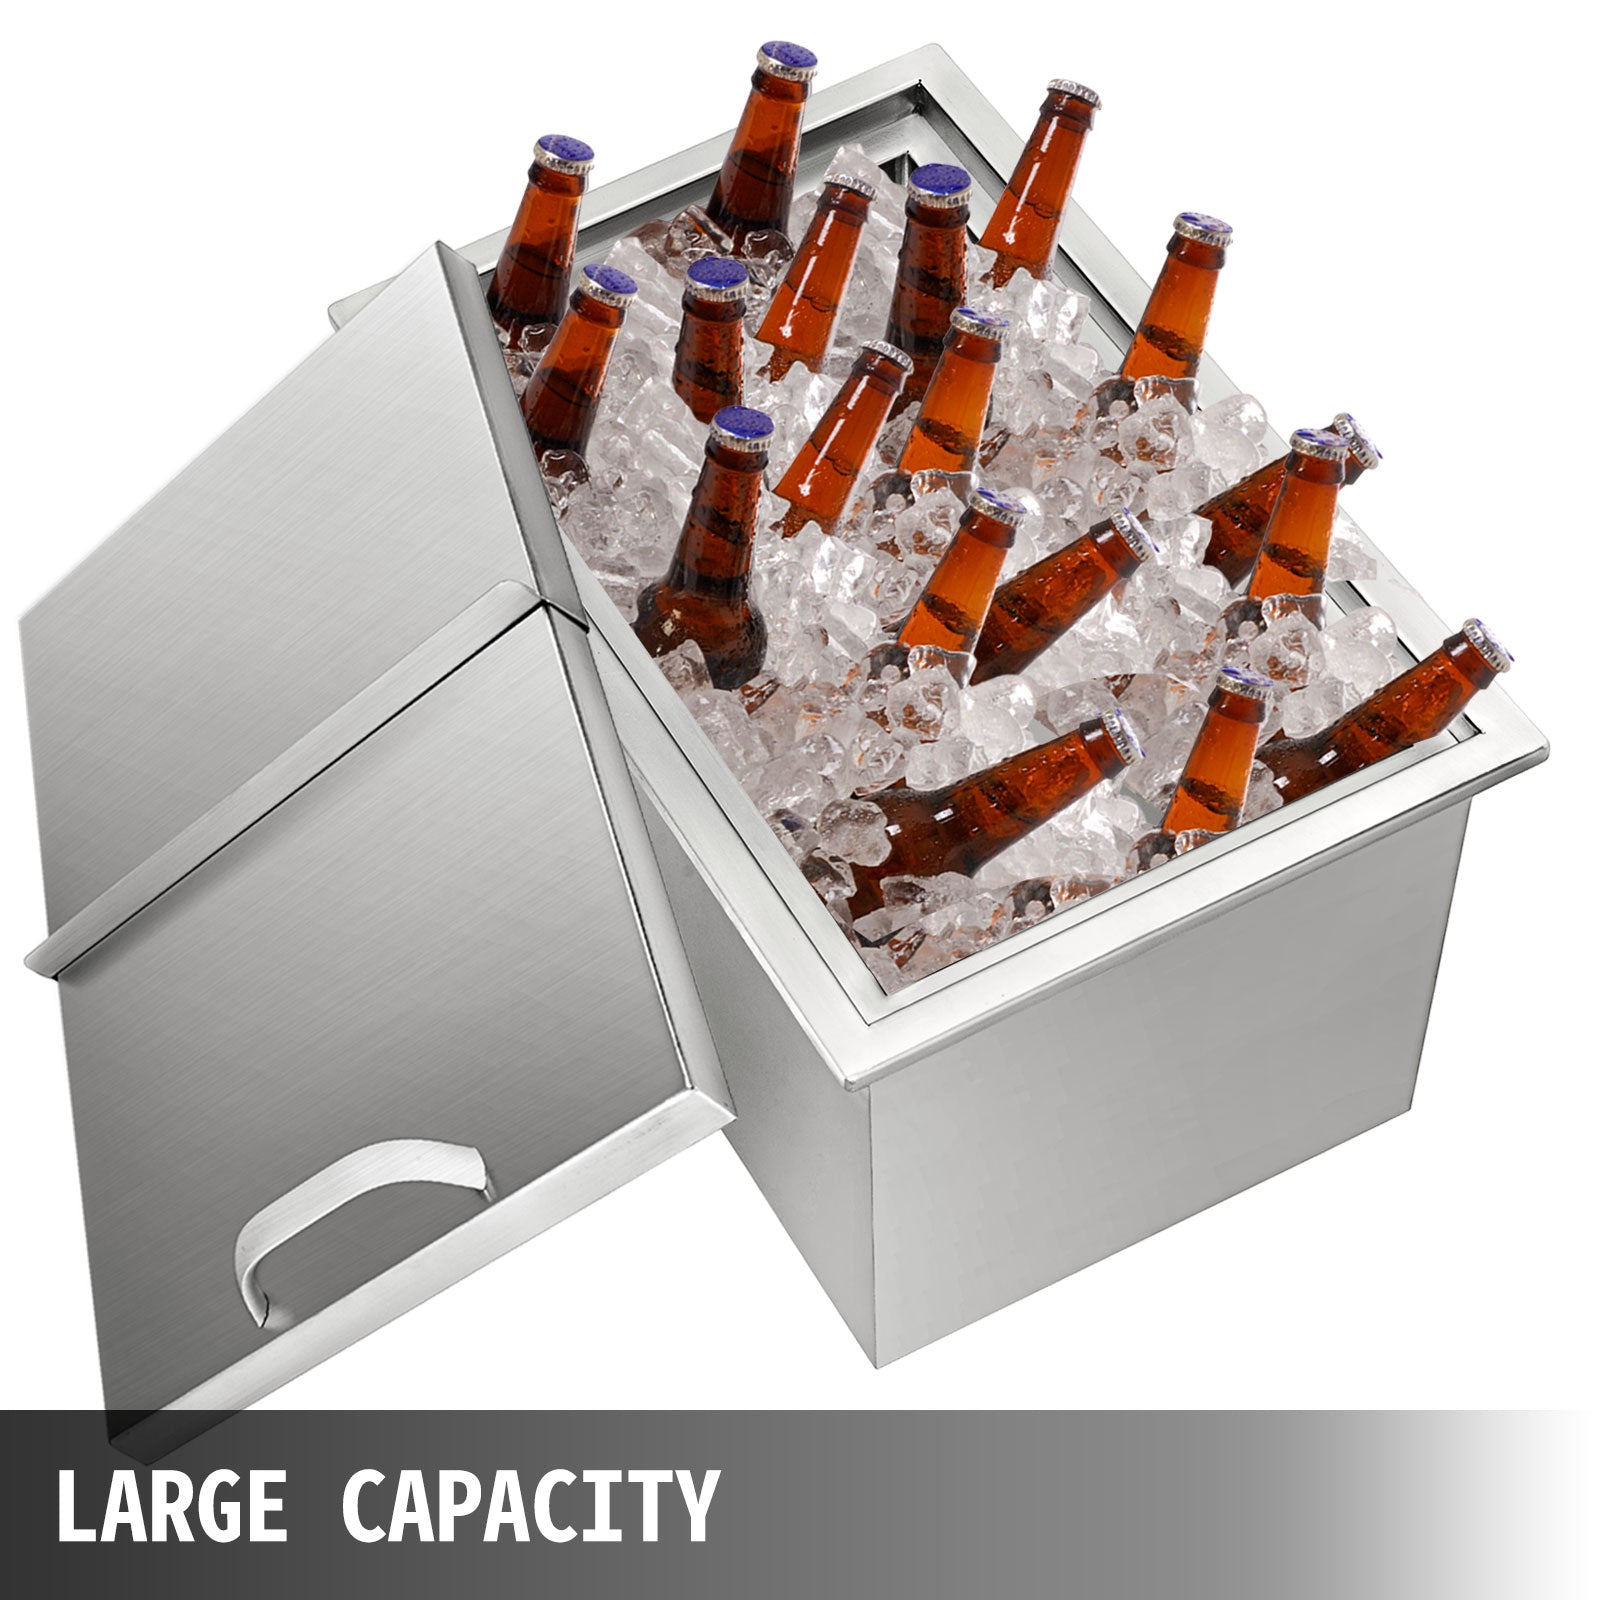 68*45*53 Cm Drop In Ice Chest Bin Ice Chest Cooler Food Cooler W/water Pipe